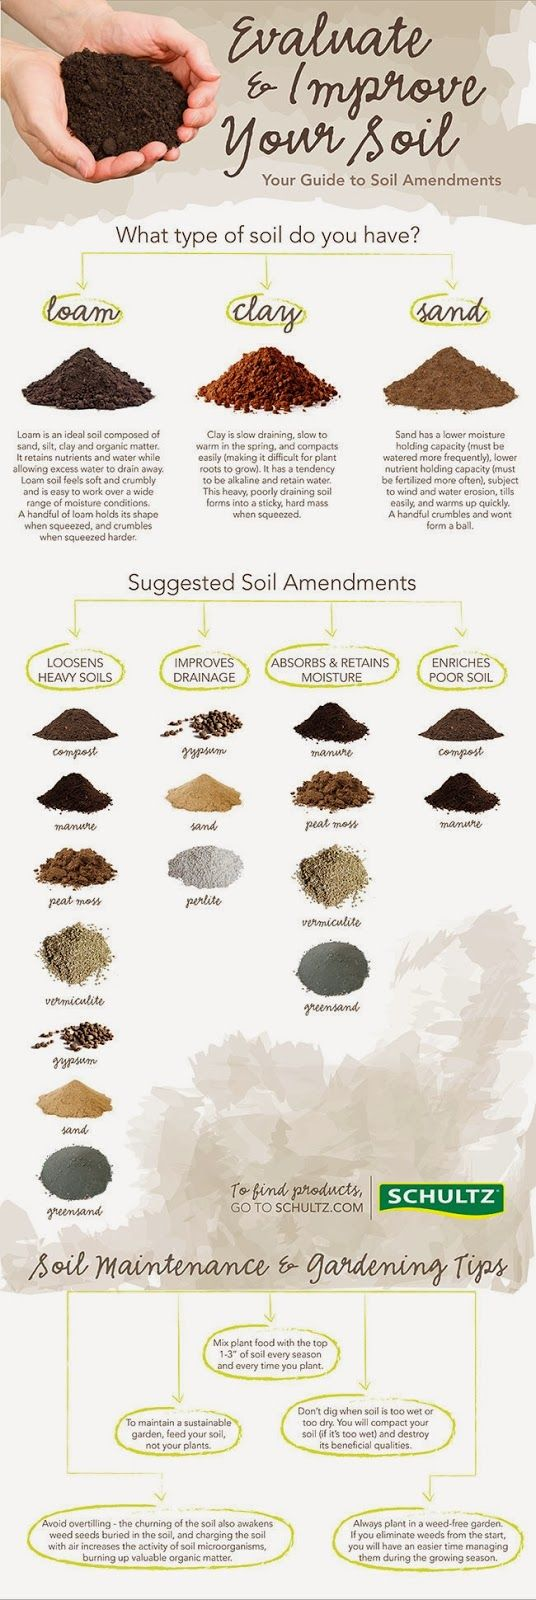 Start To Grow: How to Evaluate and Improve Your Soil